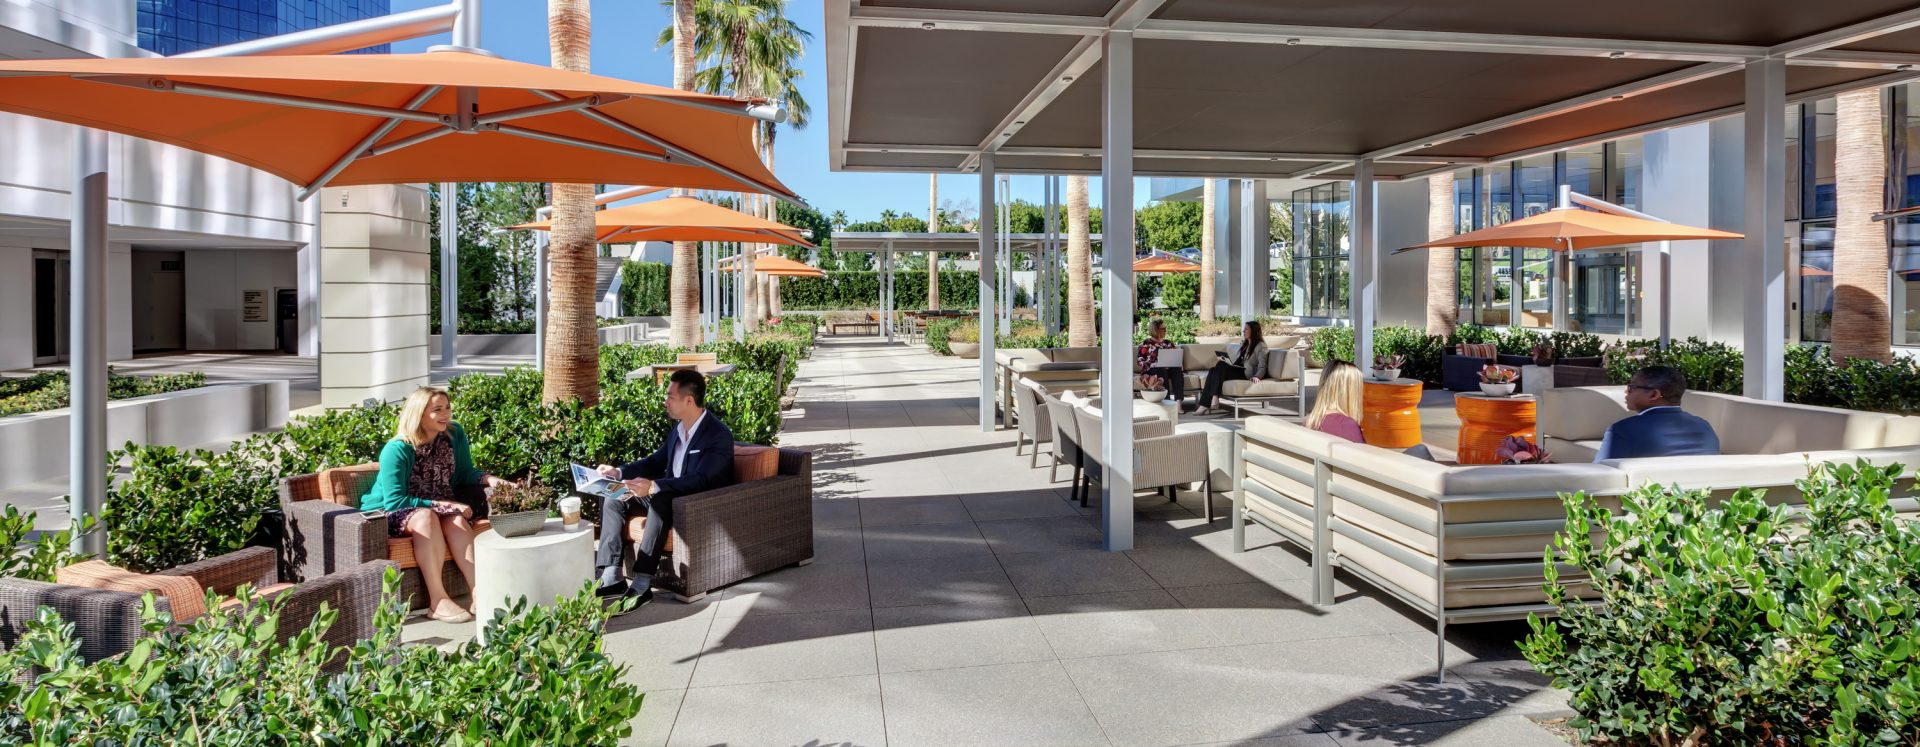 Lifestyle photographyof the outdoor workspace area of Ona La Jolla Center, San Diego, California